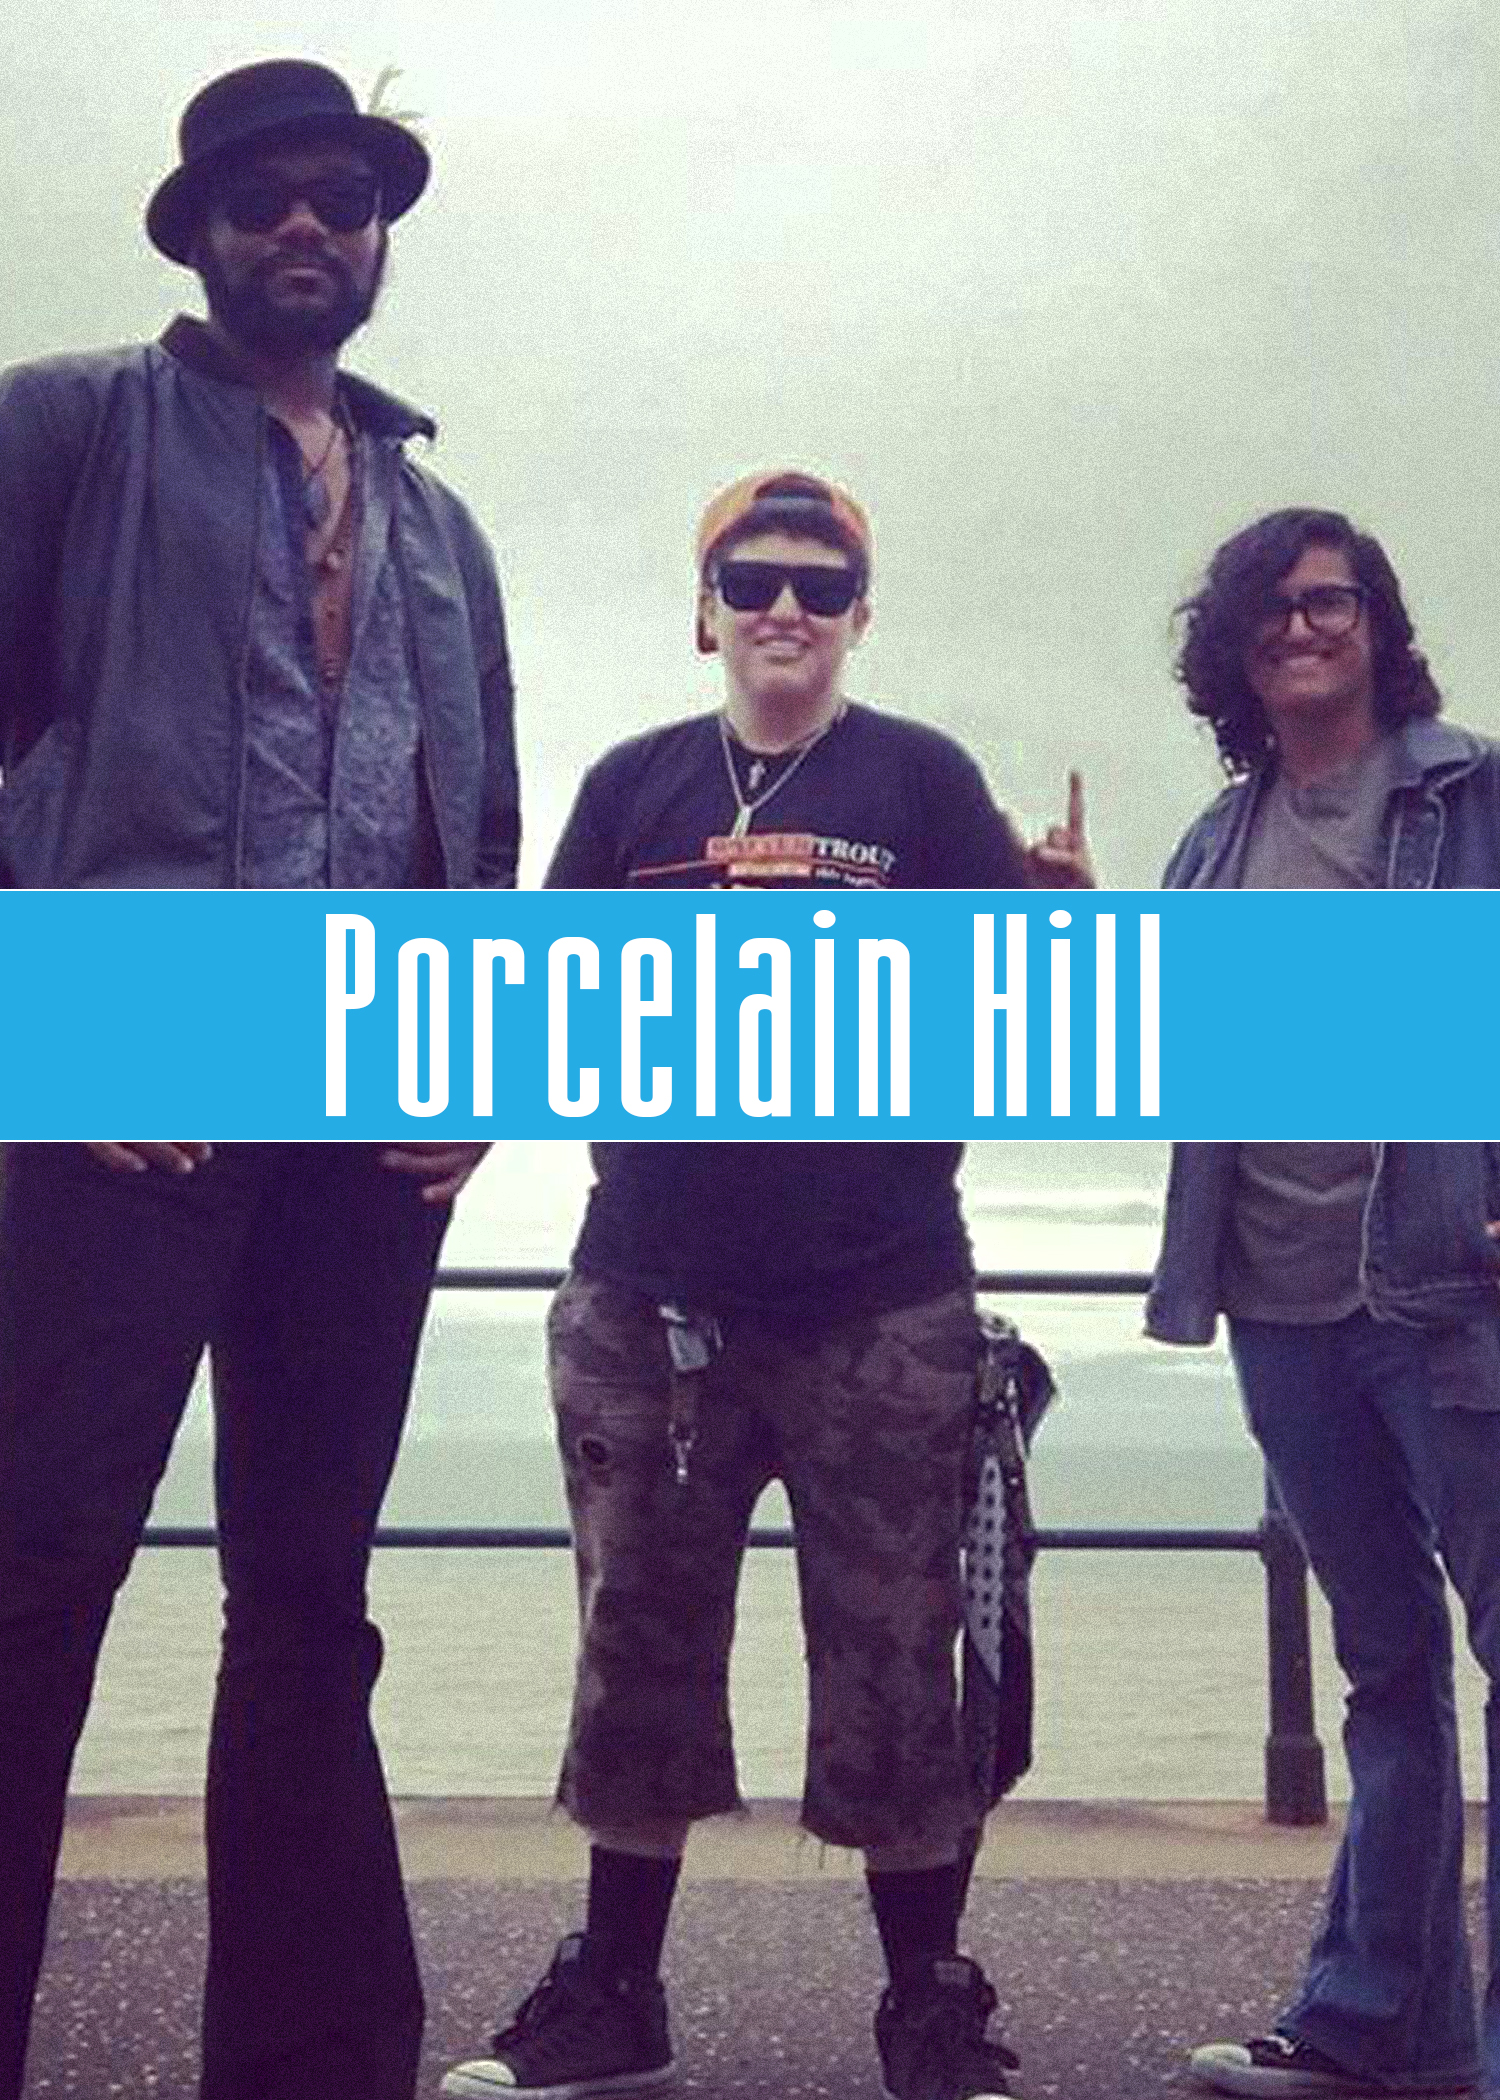 Porcelain Hill